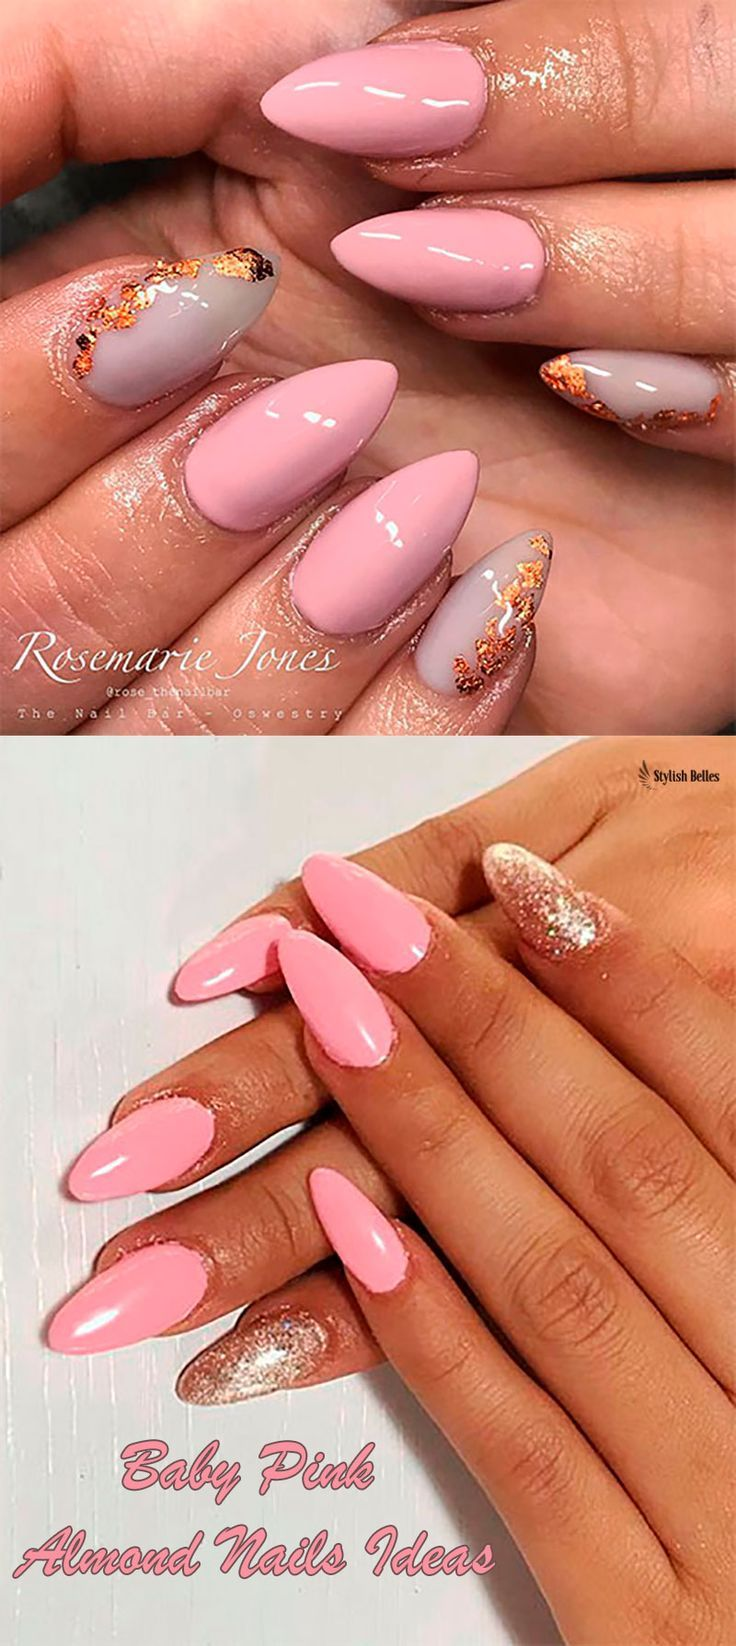 Cute Baby Pink Almond Nails Ideas In 2019 Shiny Nails Designs Baby Pink Nails Nail Designs